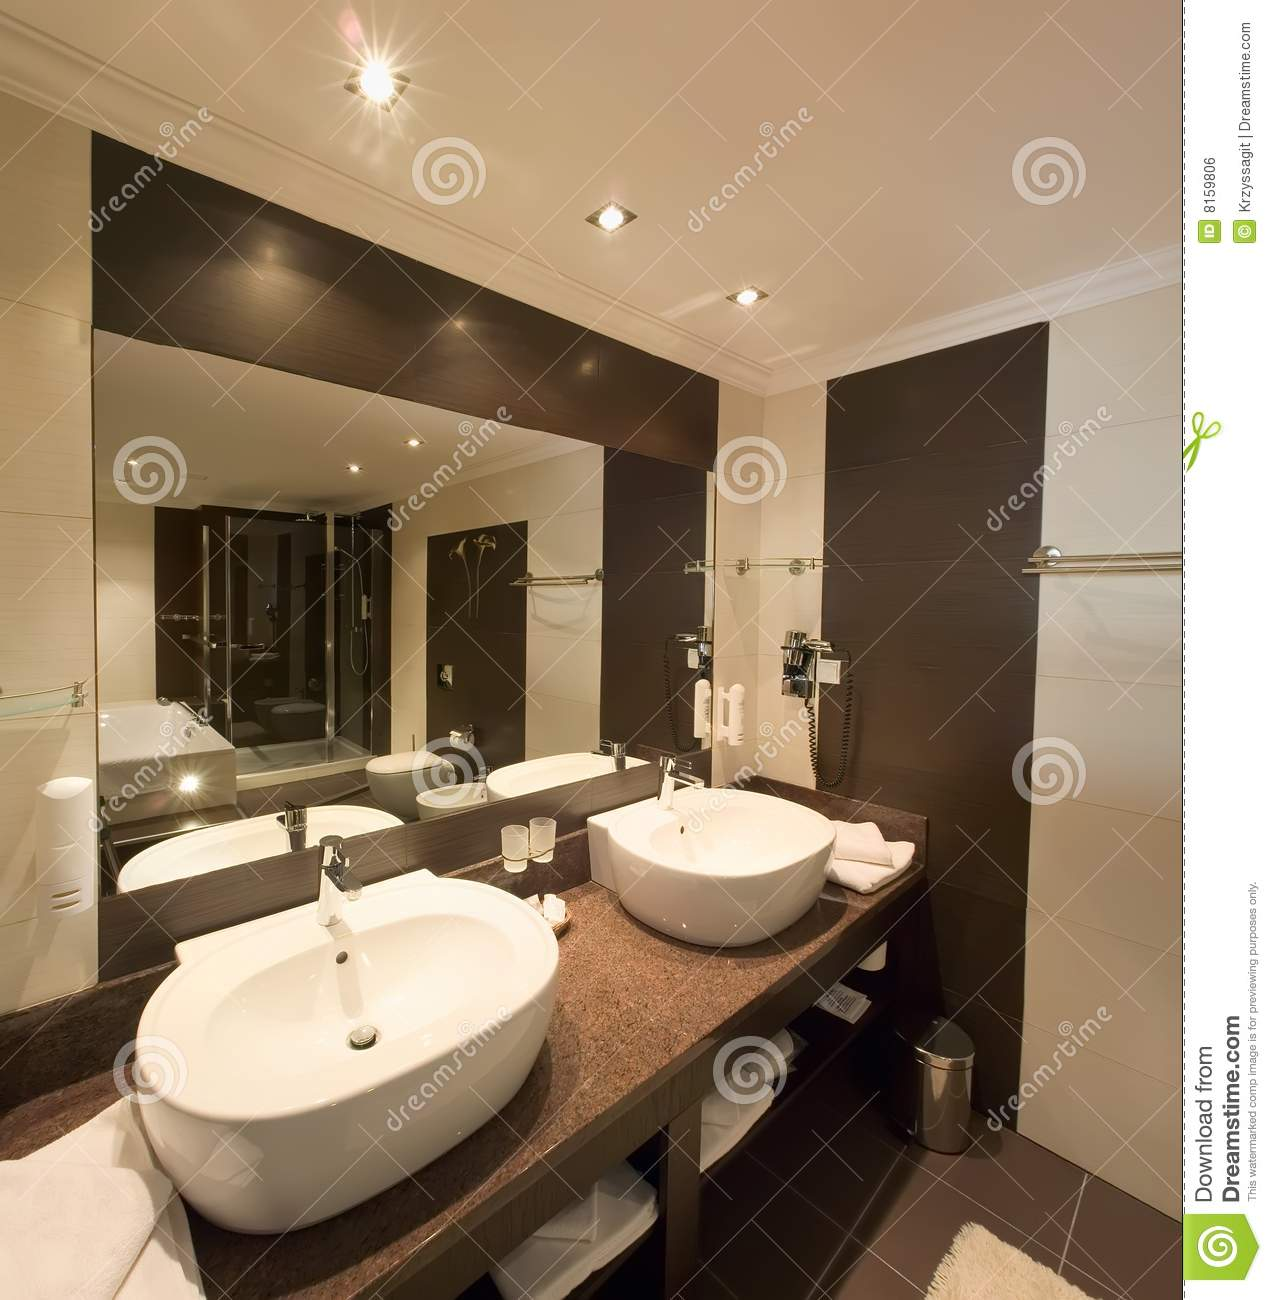 Elegant washroom royalty free stock image image 8159806 for Beautiful washrooms